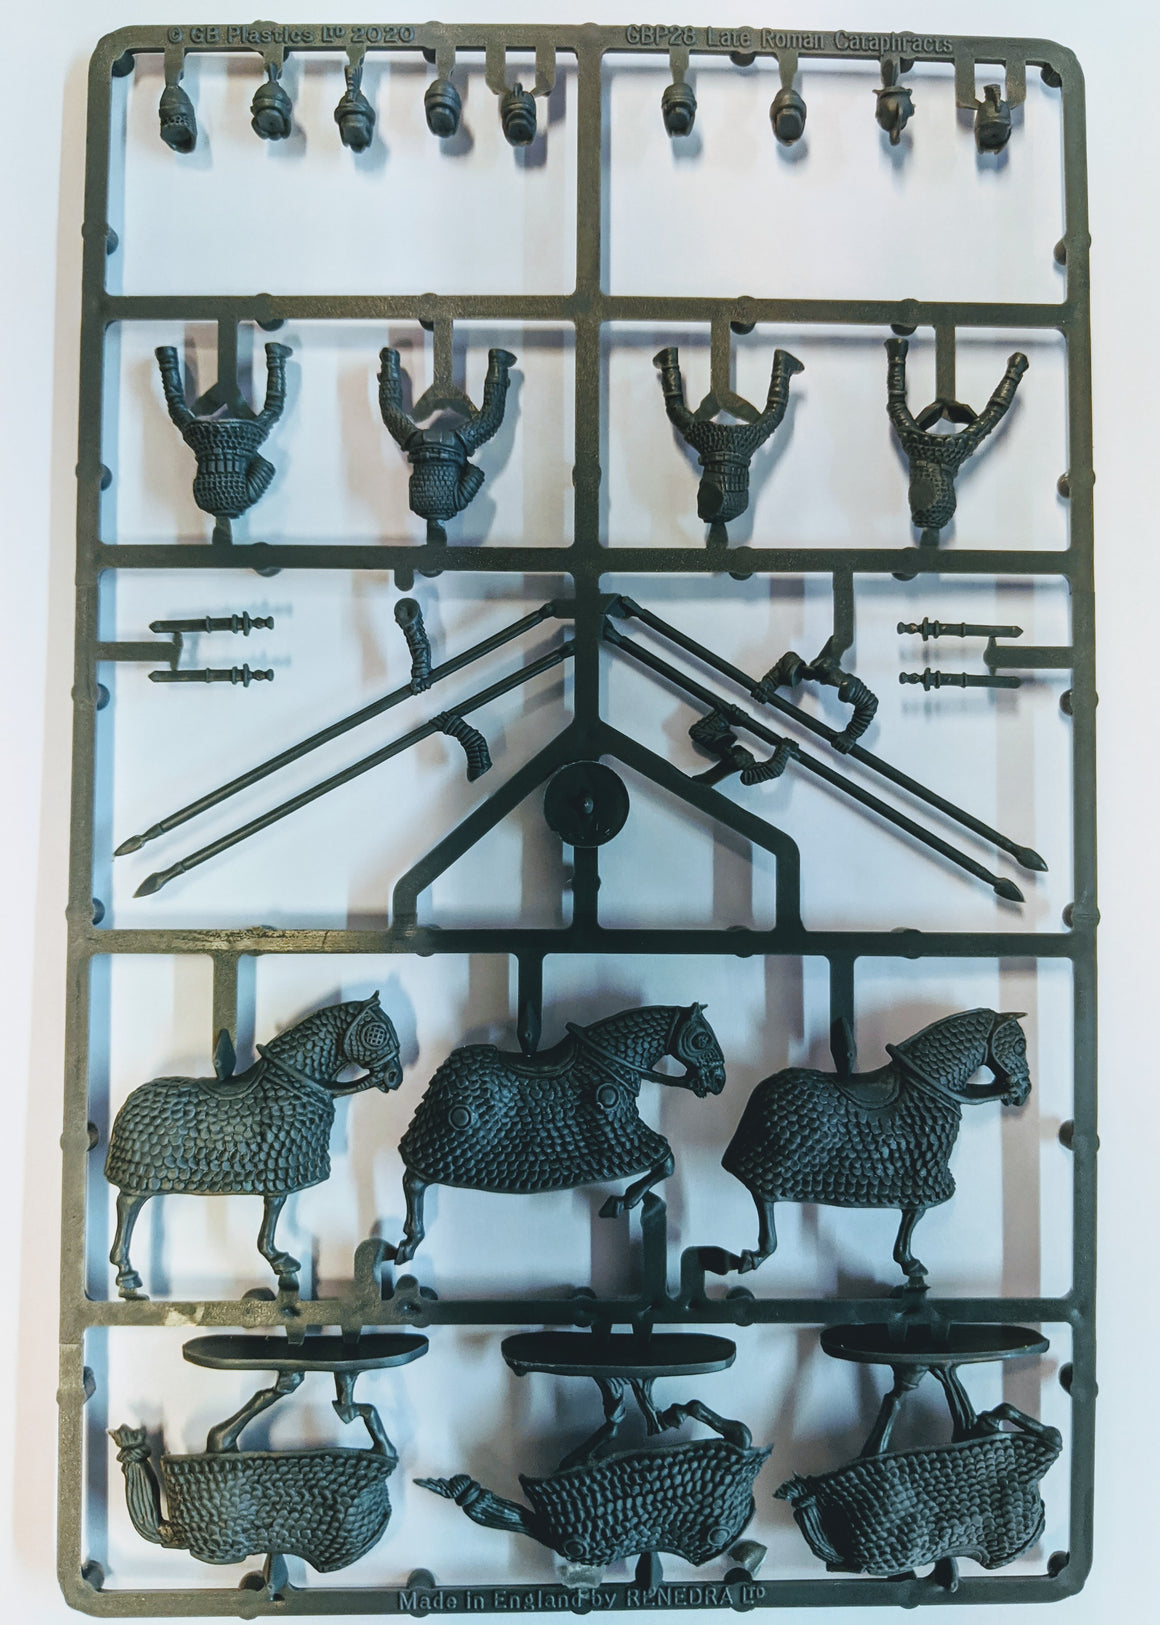 Gripping Beast Late Roman Cataphracts Sprue